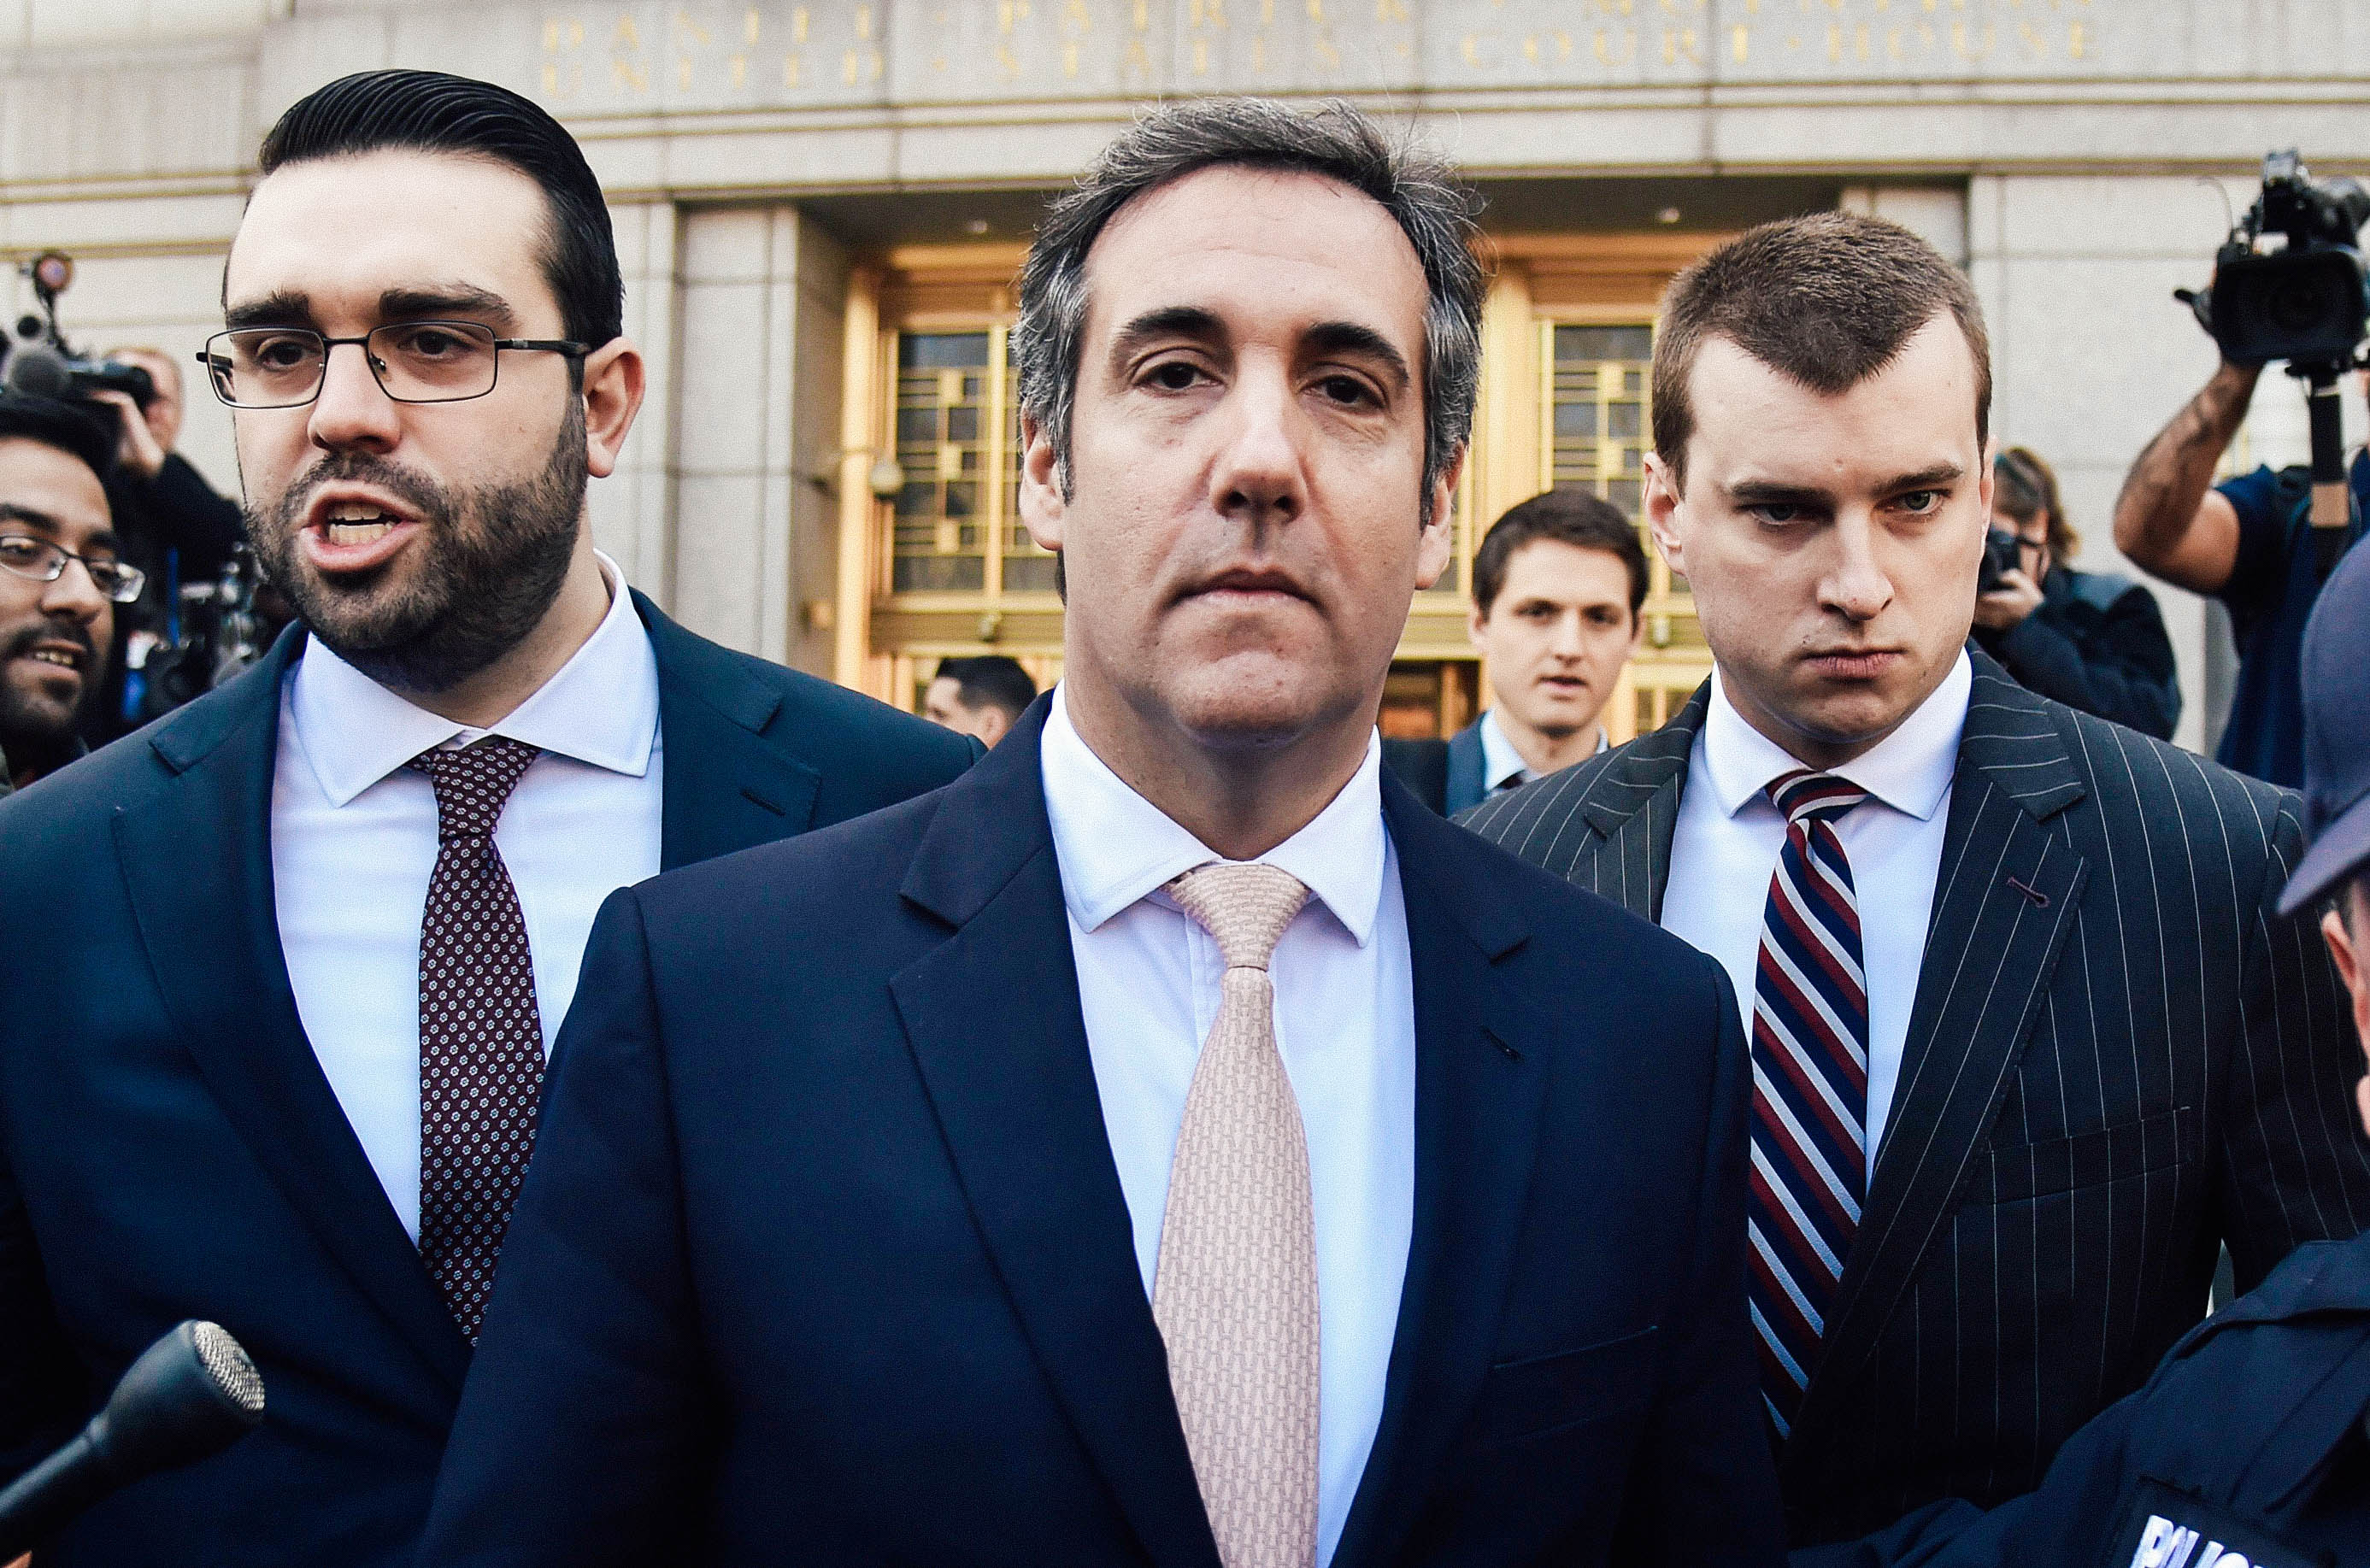 Michael Cohen leaves the U.S. Courthouse in New York, surrounded by police, his lawyers, and journalists.